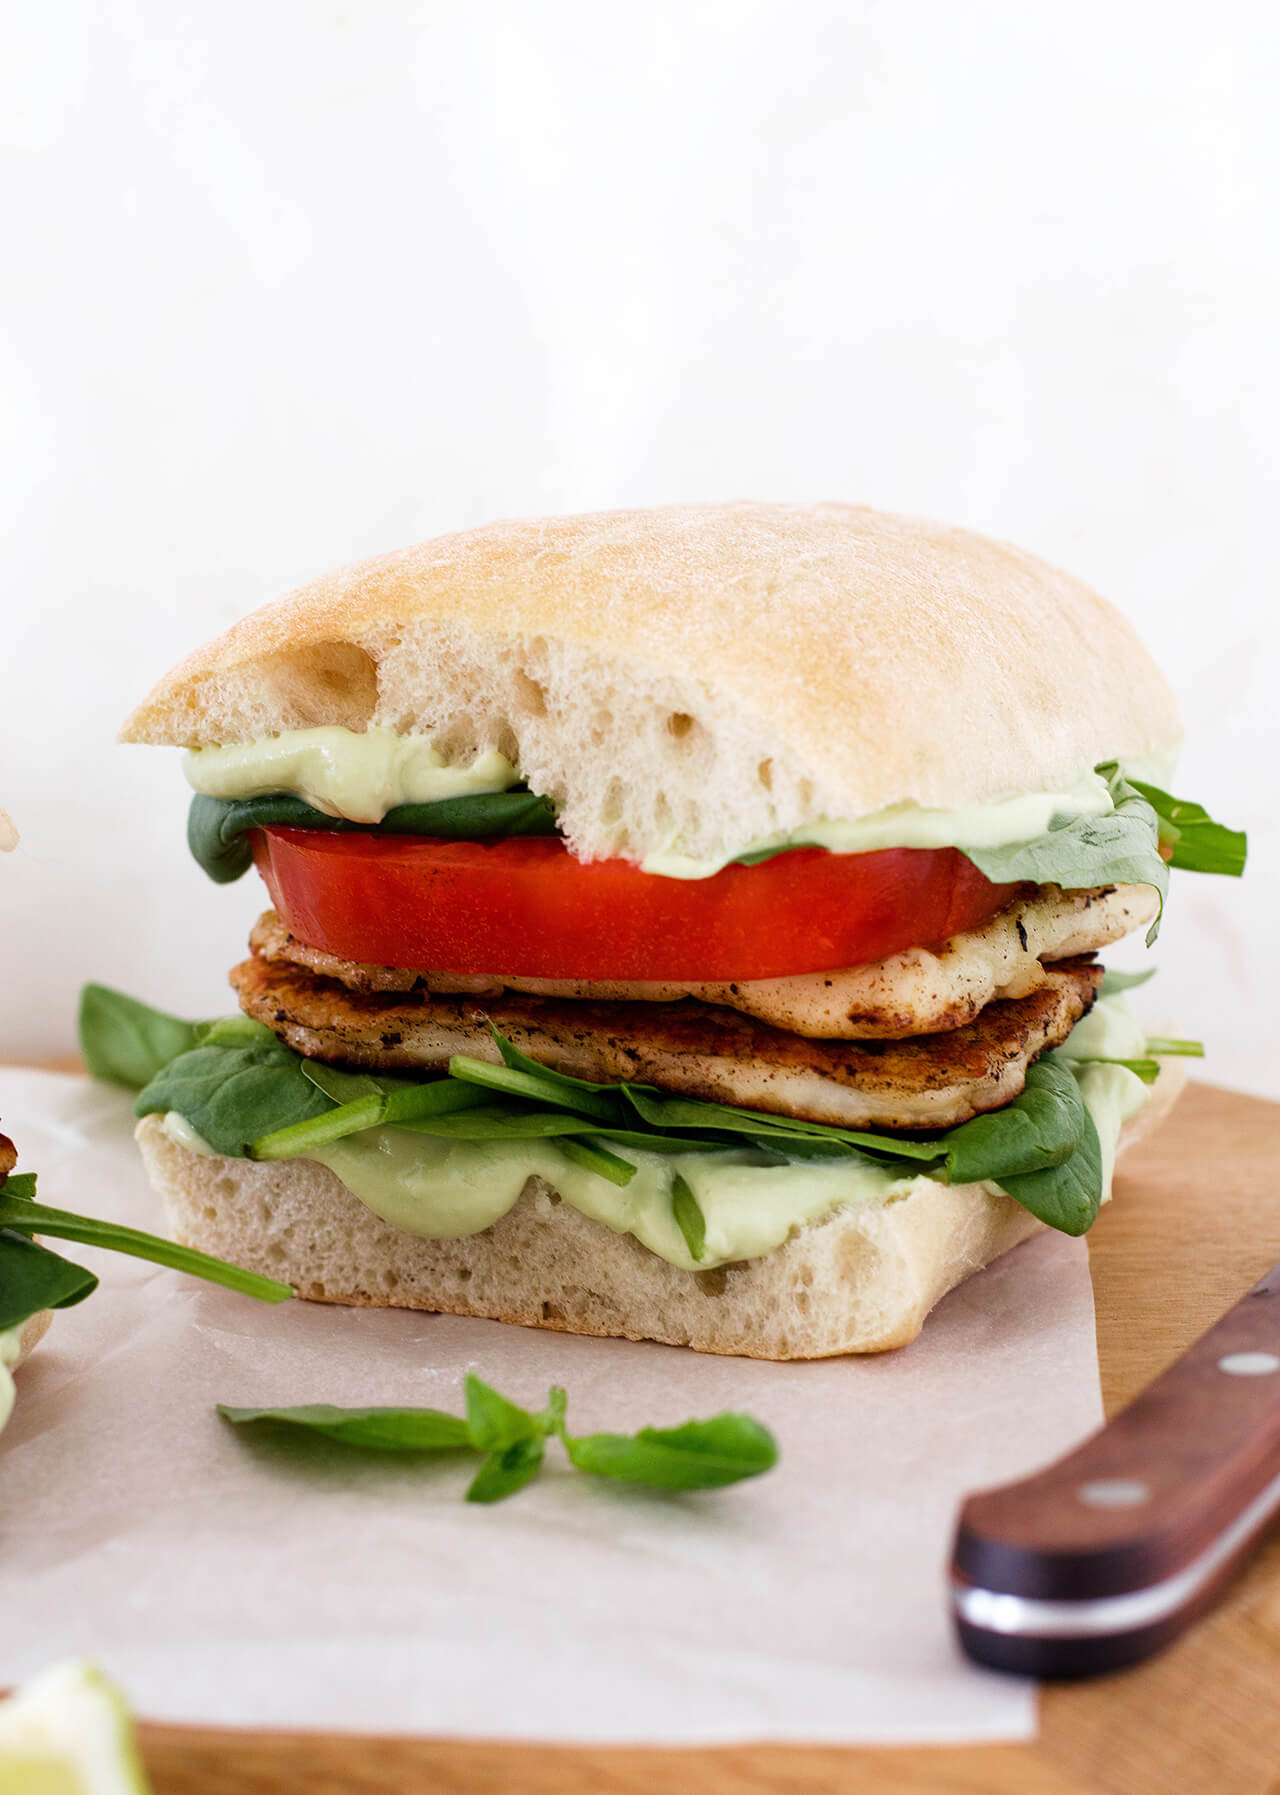 Avocado crema halloumi sandwich makes the perfect vegetarian lunch or dinner, packed with greens and made quickly.